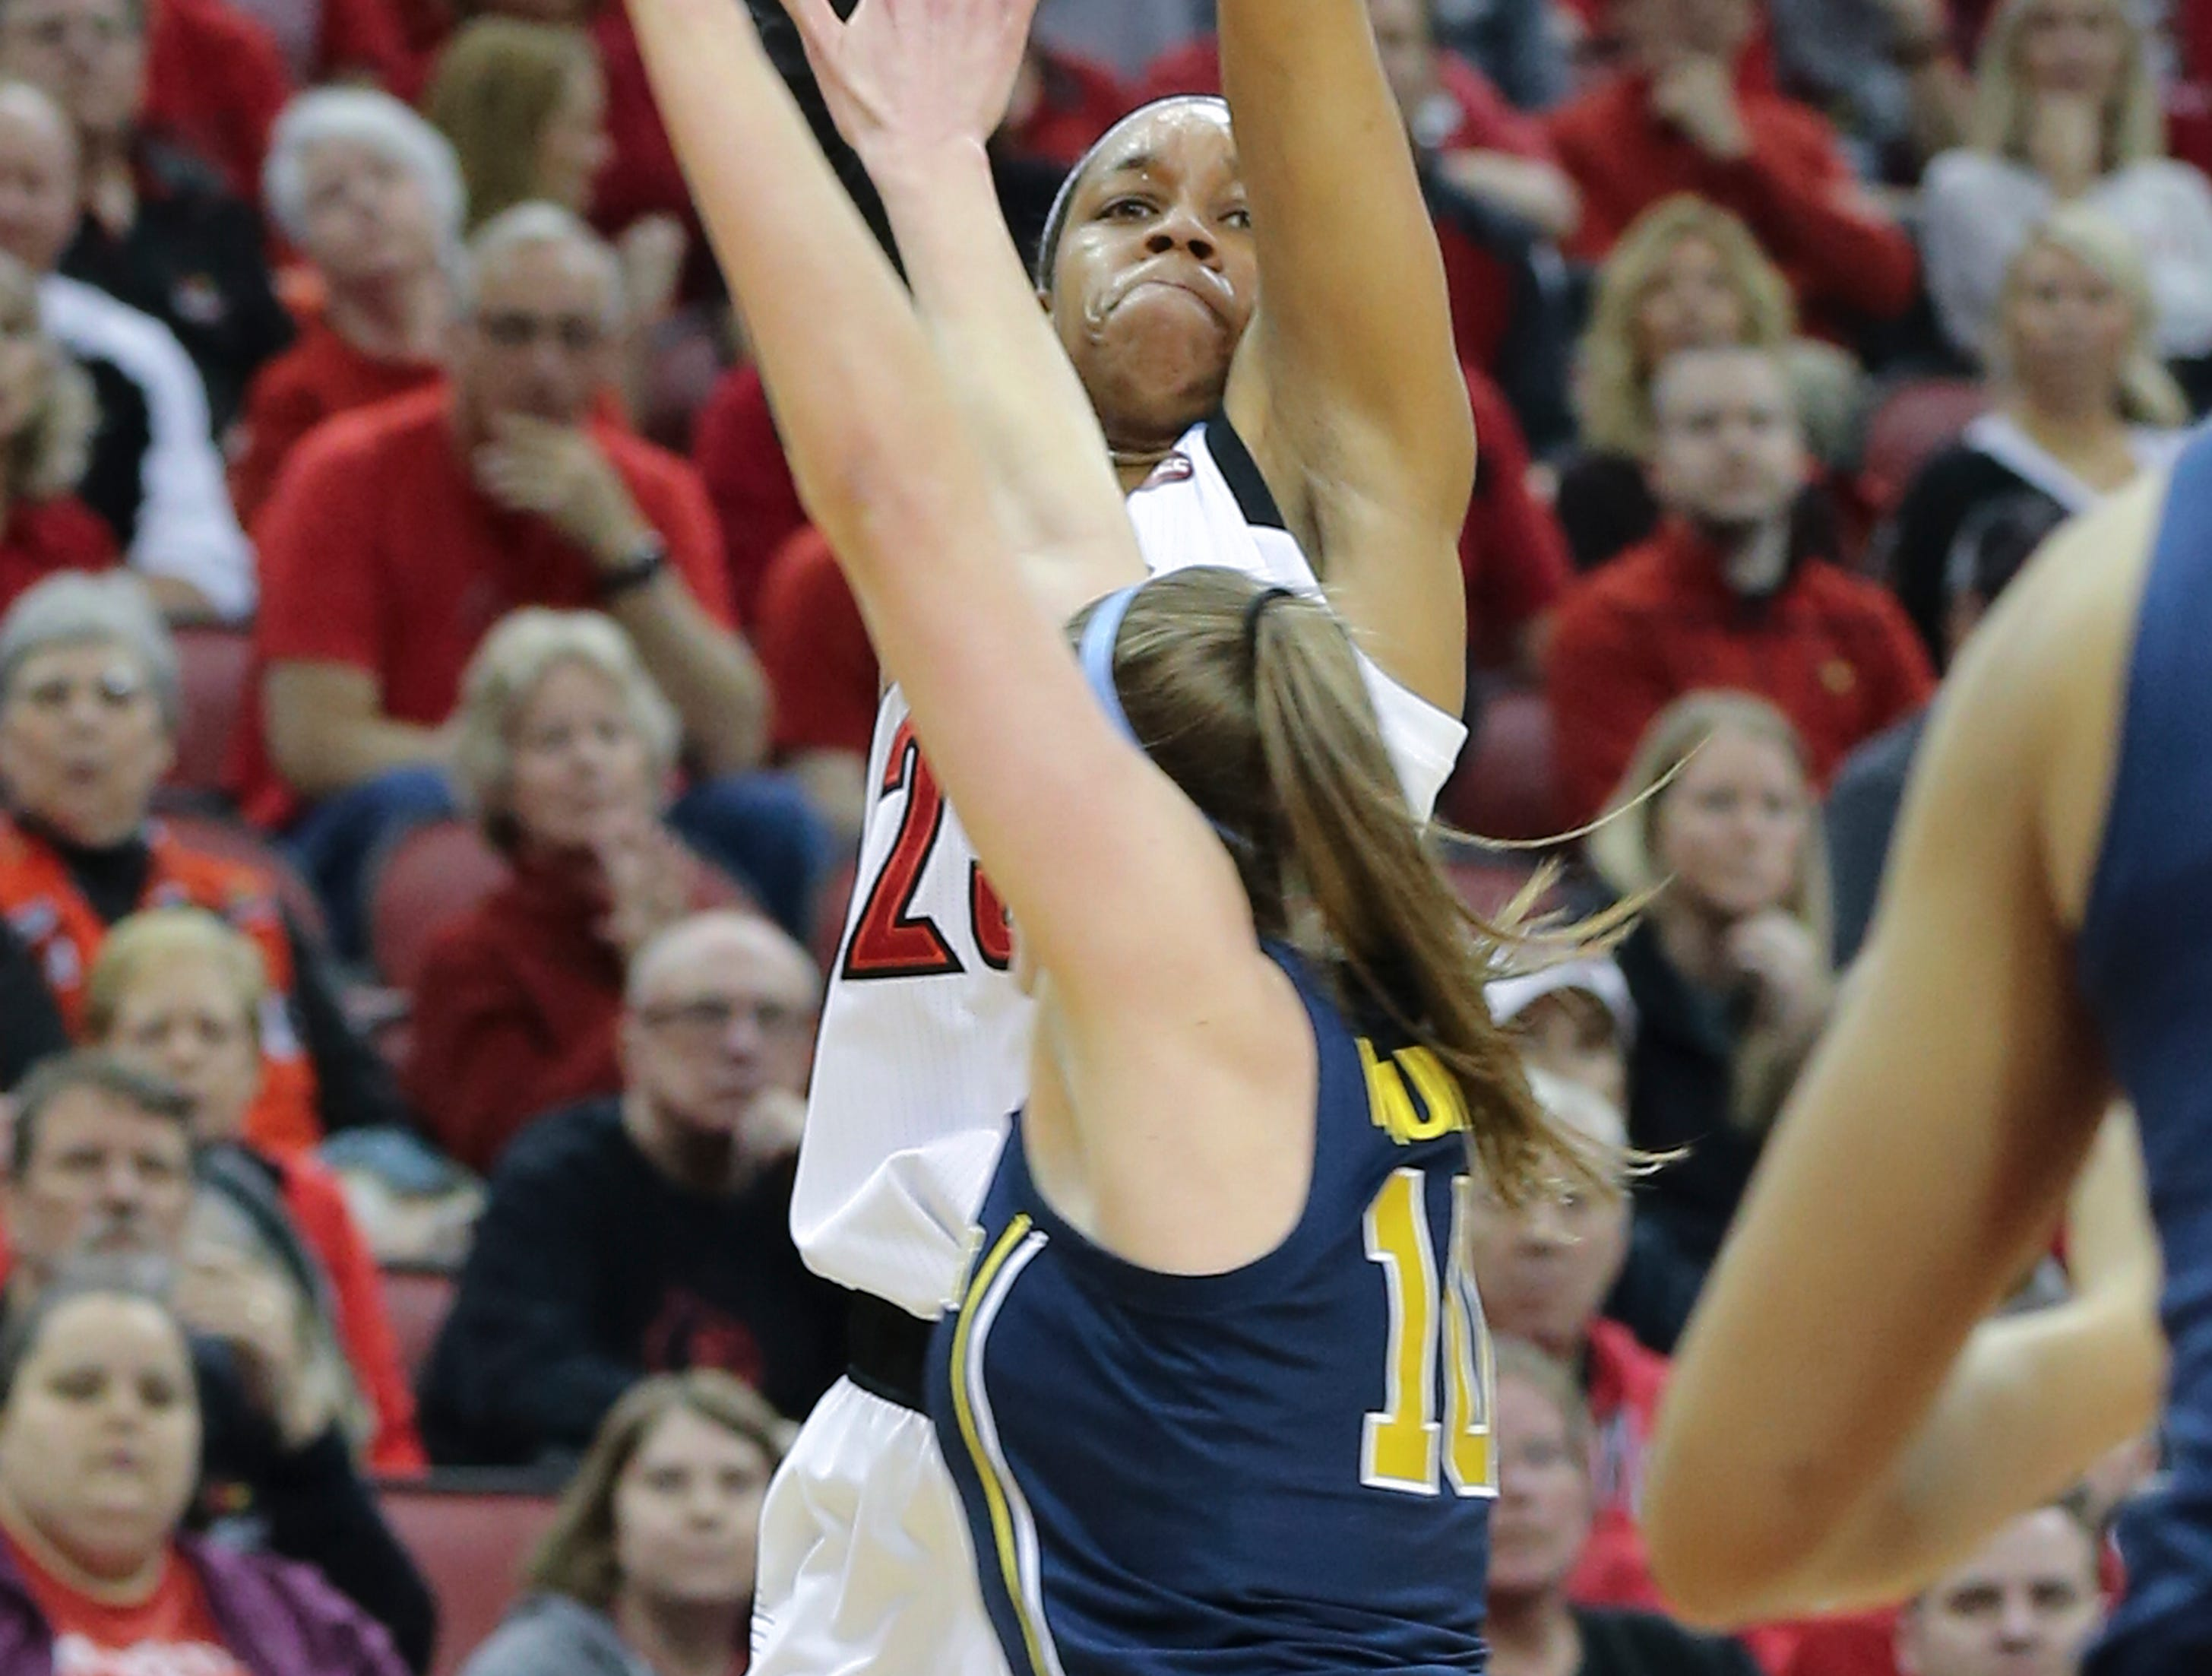 U of L's Asia Durr (25) shoots a three-point shot against against Michigan's Nicole Munger (10) during the second round of their NCAA Tournament game at the Yum Center.Mar. 24, 2019